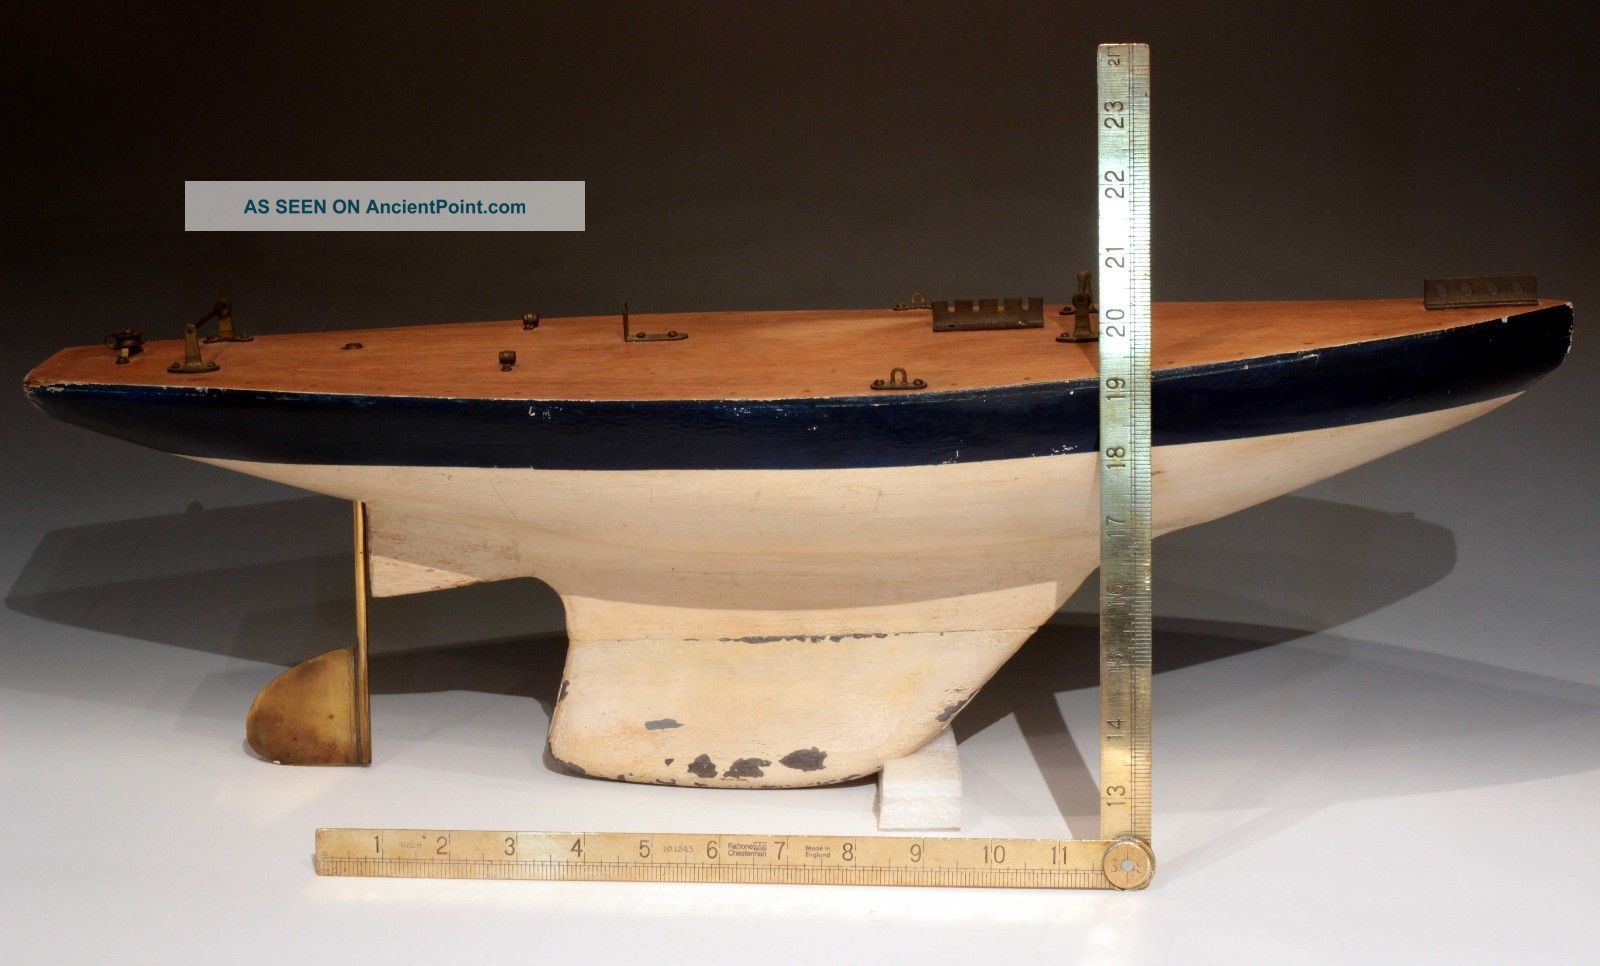 Antique Pond Boat,  With Deck Hardware And Lead Keel. Model Ships photo